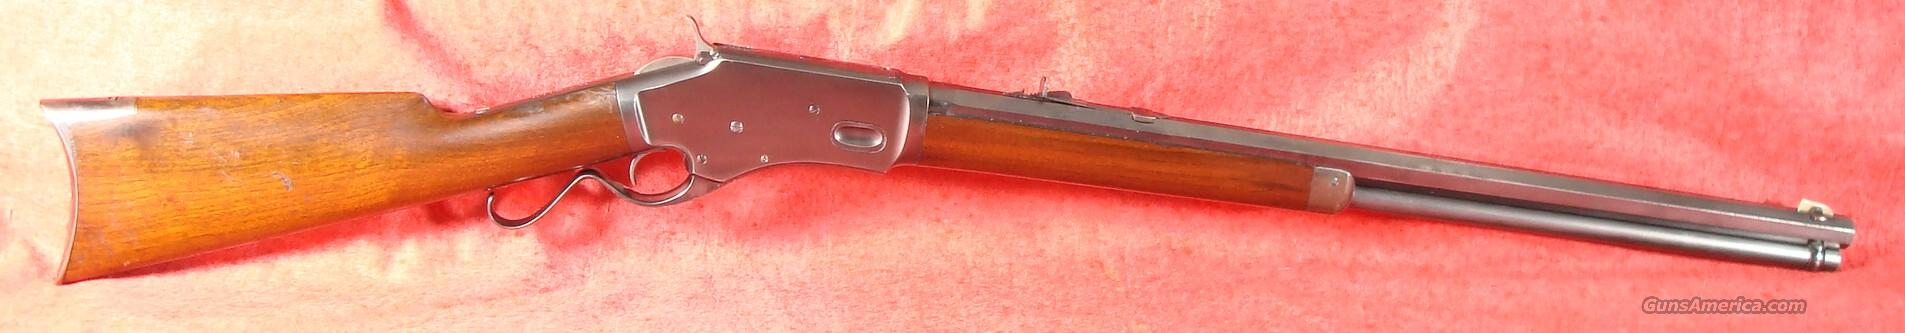 Whitney Kennedy .44-40 Rifle, Incredible Condition!  Guns > Rifles > Antique (Pre-1899) Rifles - Ctg. Misc.